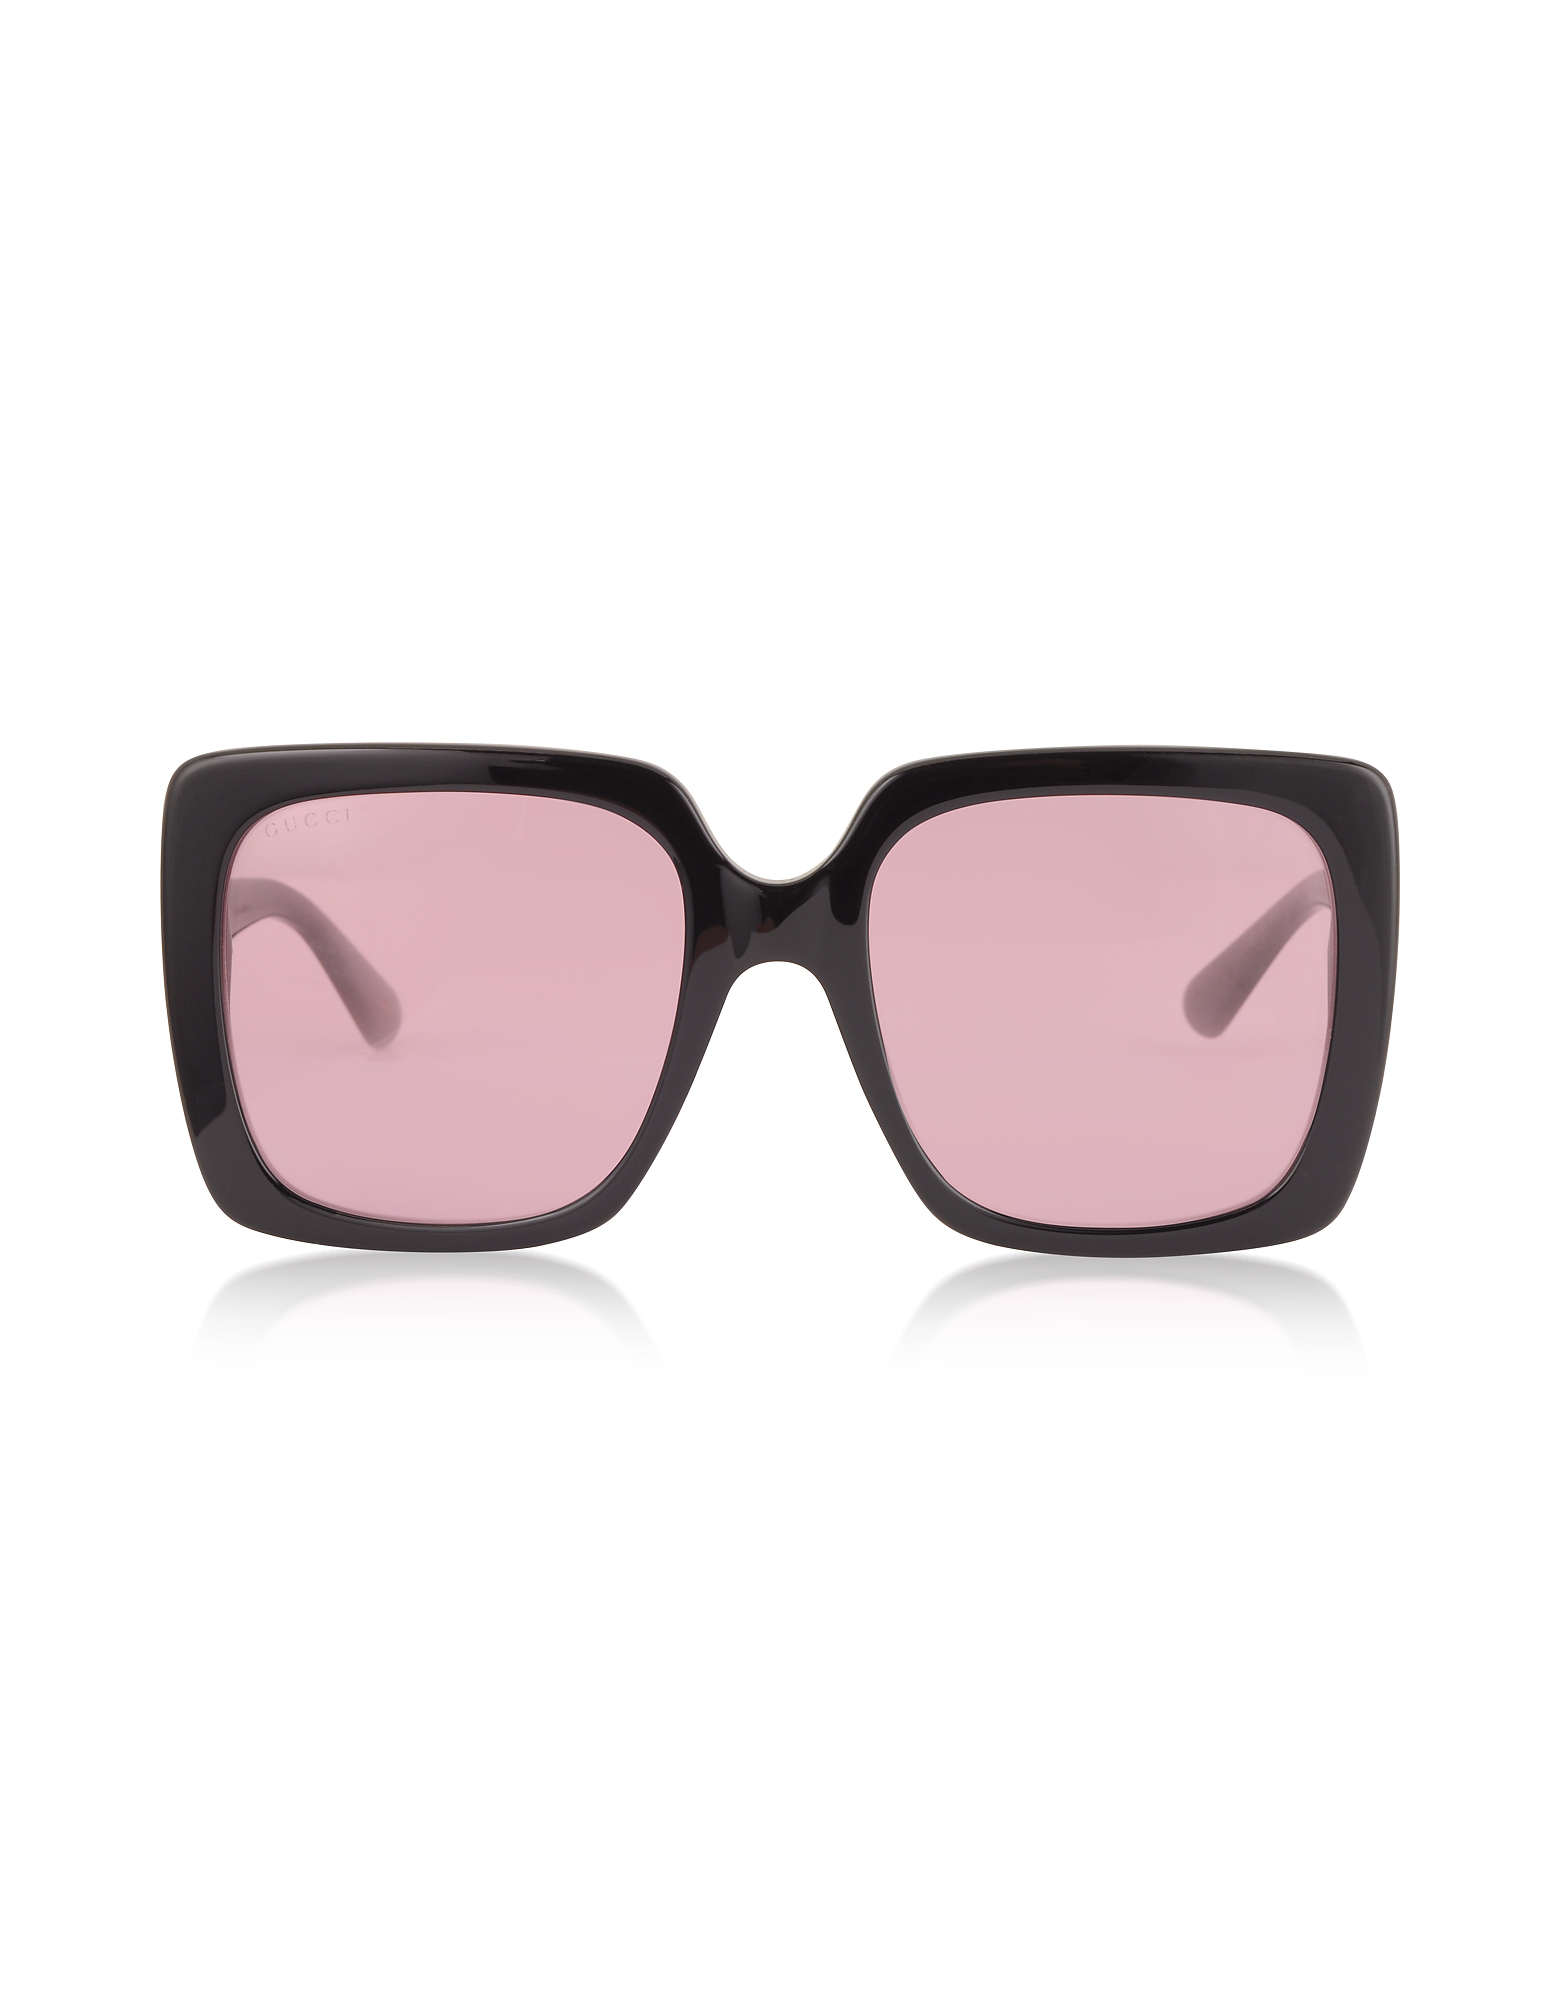 1ba9ba9ded1 Gucci 54Mm Gradient Square Sunglasses - Black  Crystal  Solid Pink In Shiny  Black Acetate